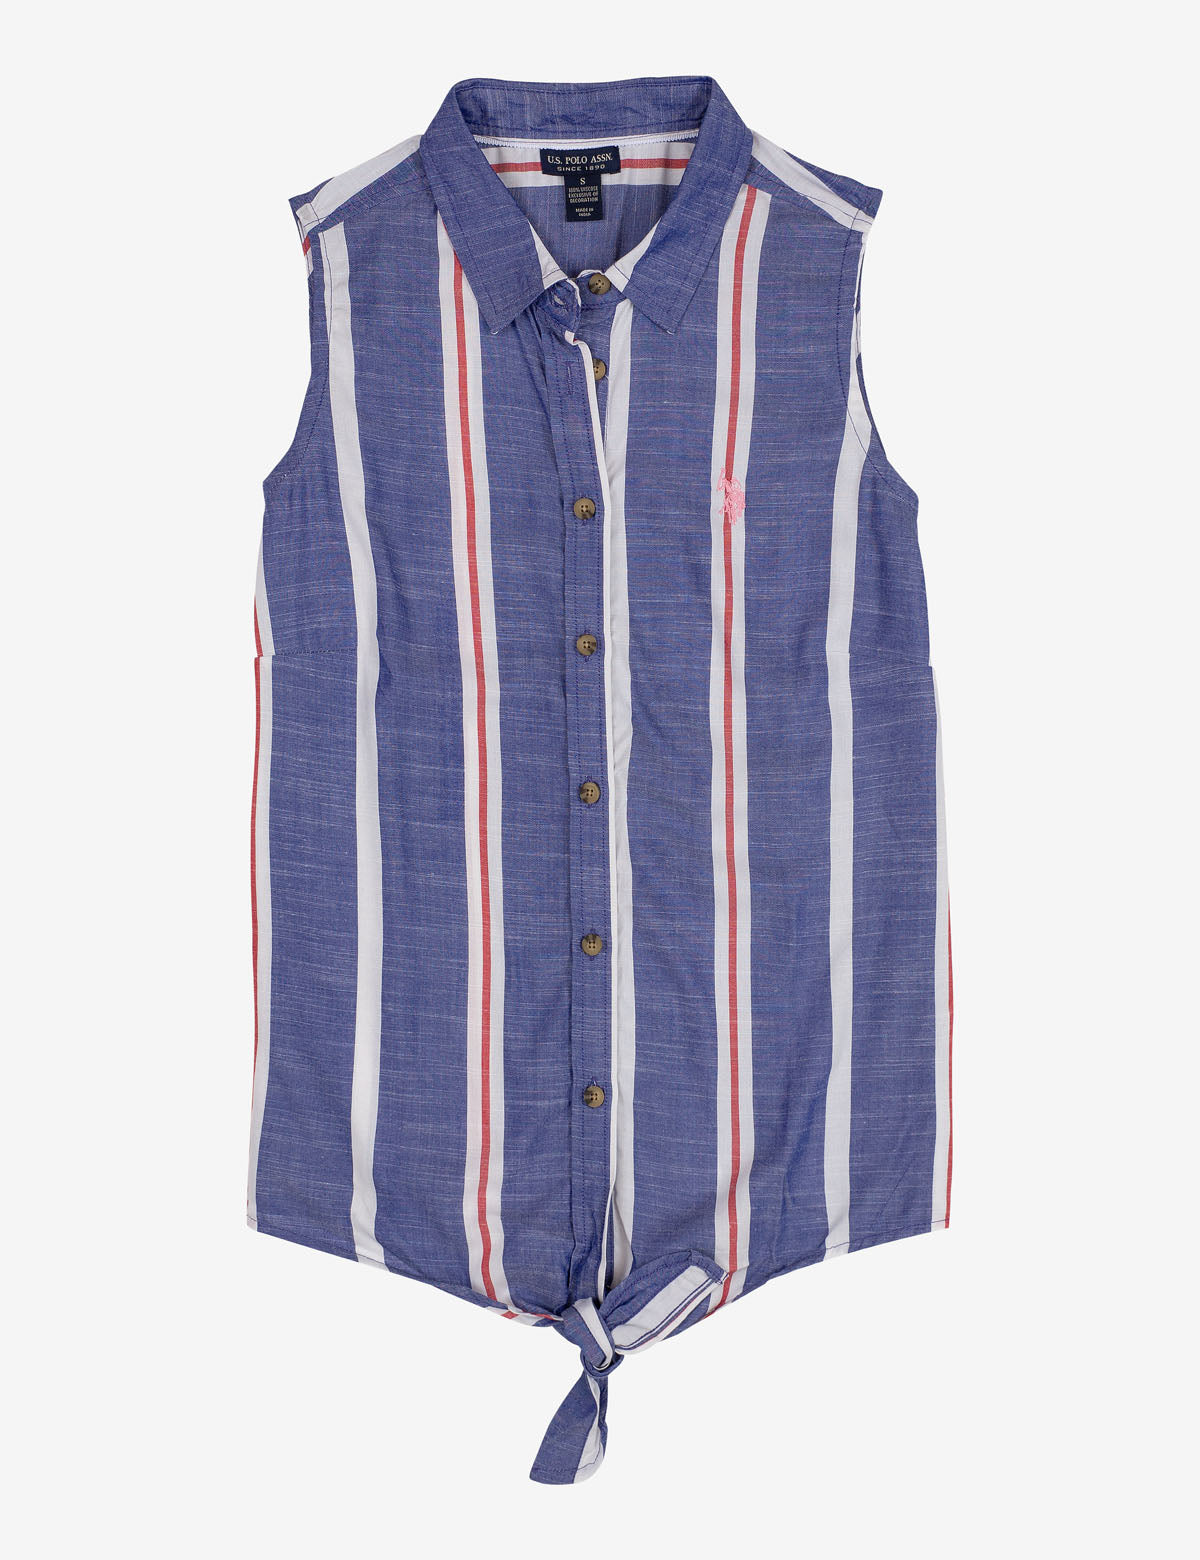 STRIPED TIE FRONT SHIRT - U.S. Polo Assn.